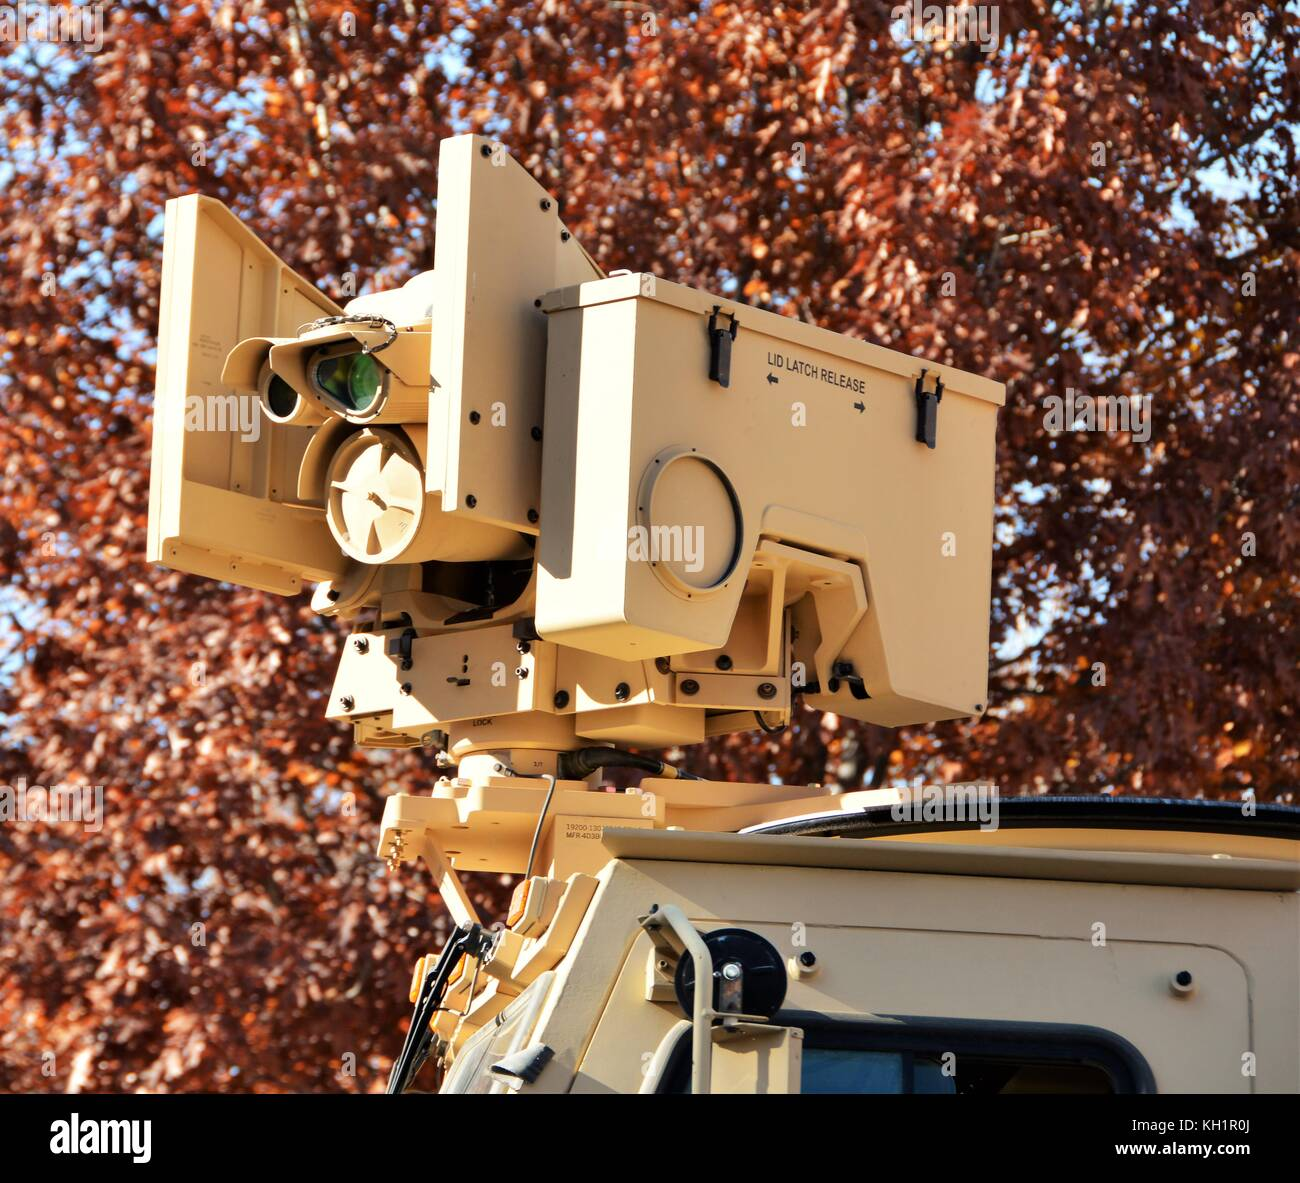 Military Remote Rocket Launcher - Stock Image